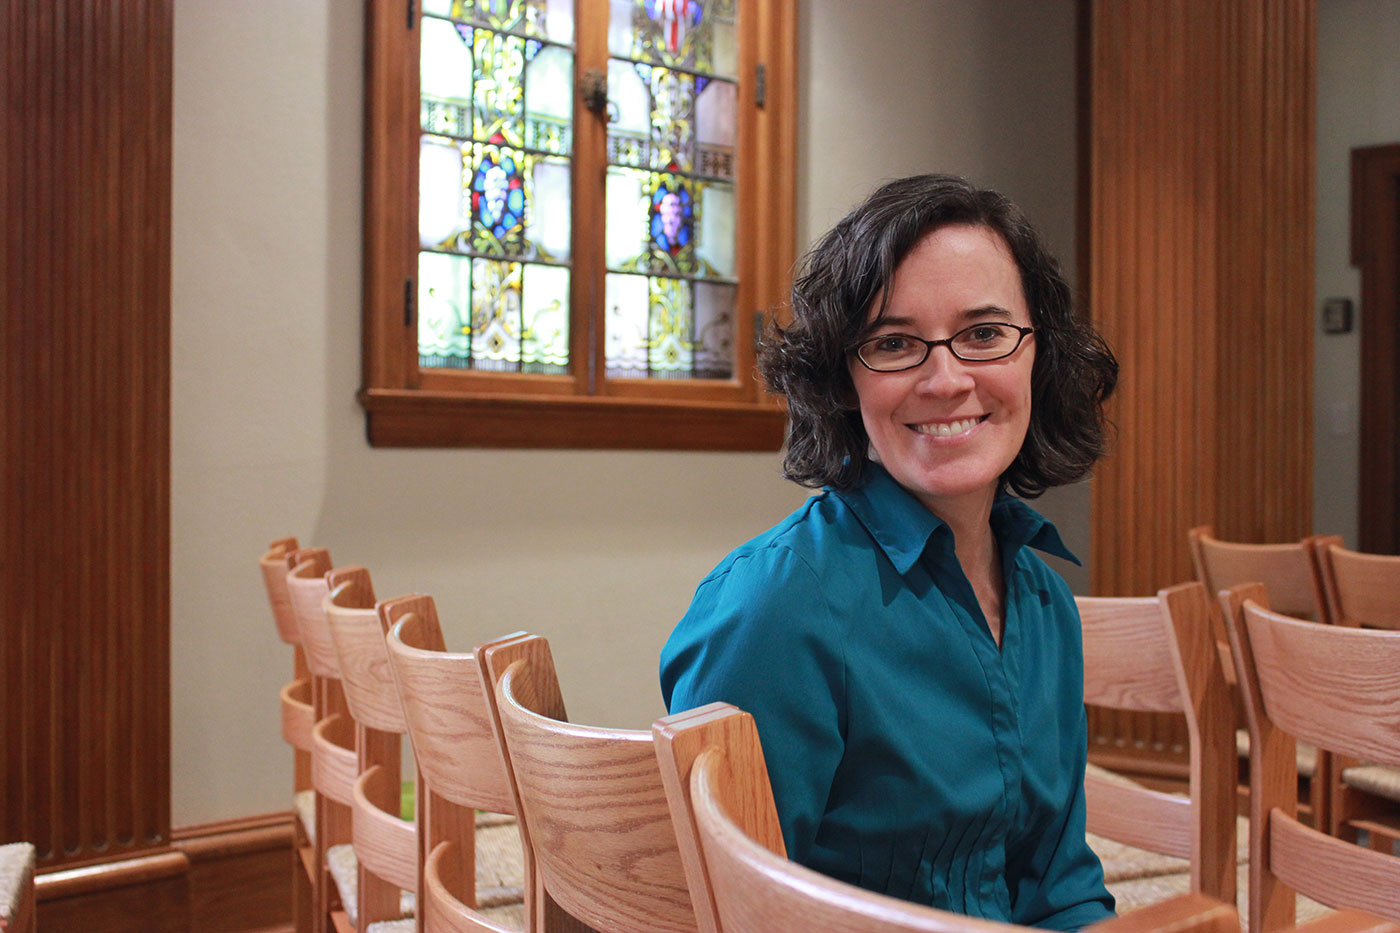 School of Divinity faculty member Liz Gandolfo